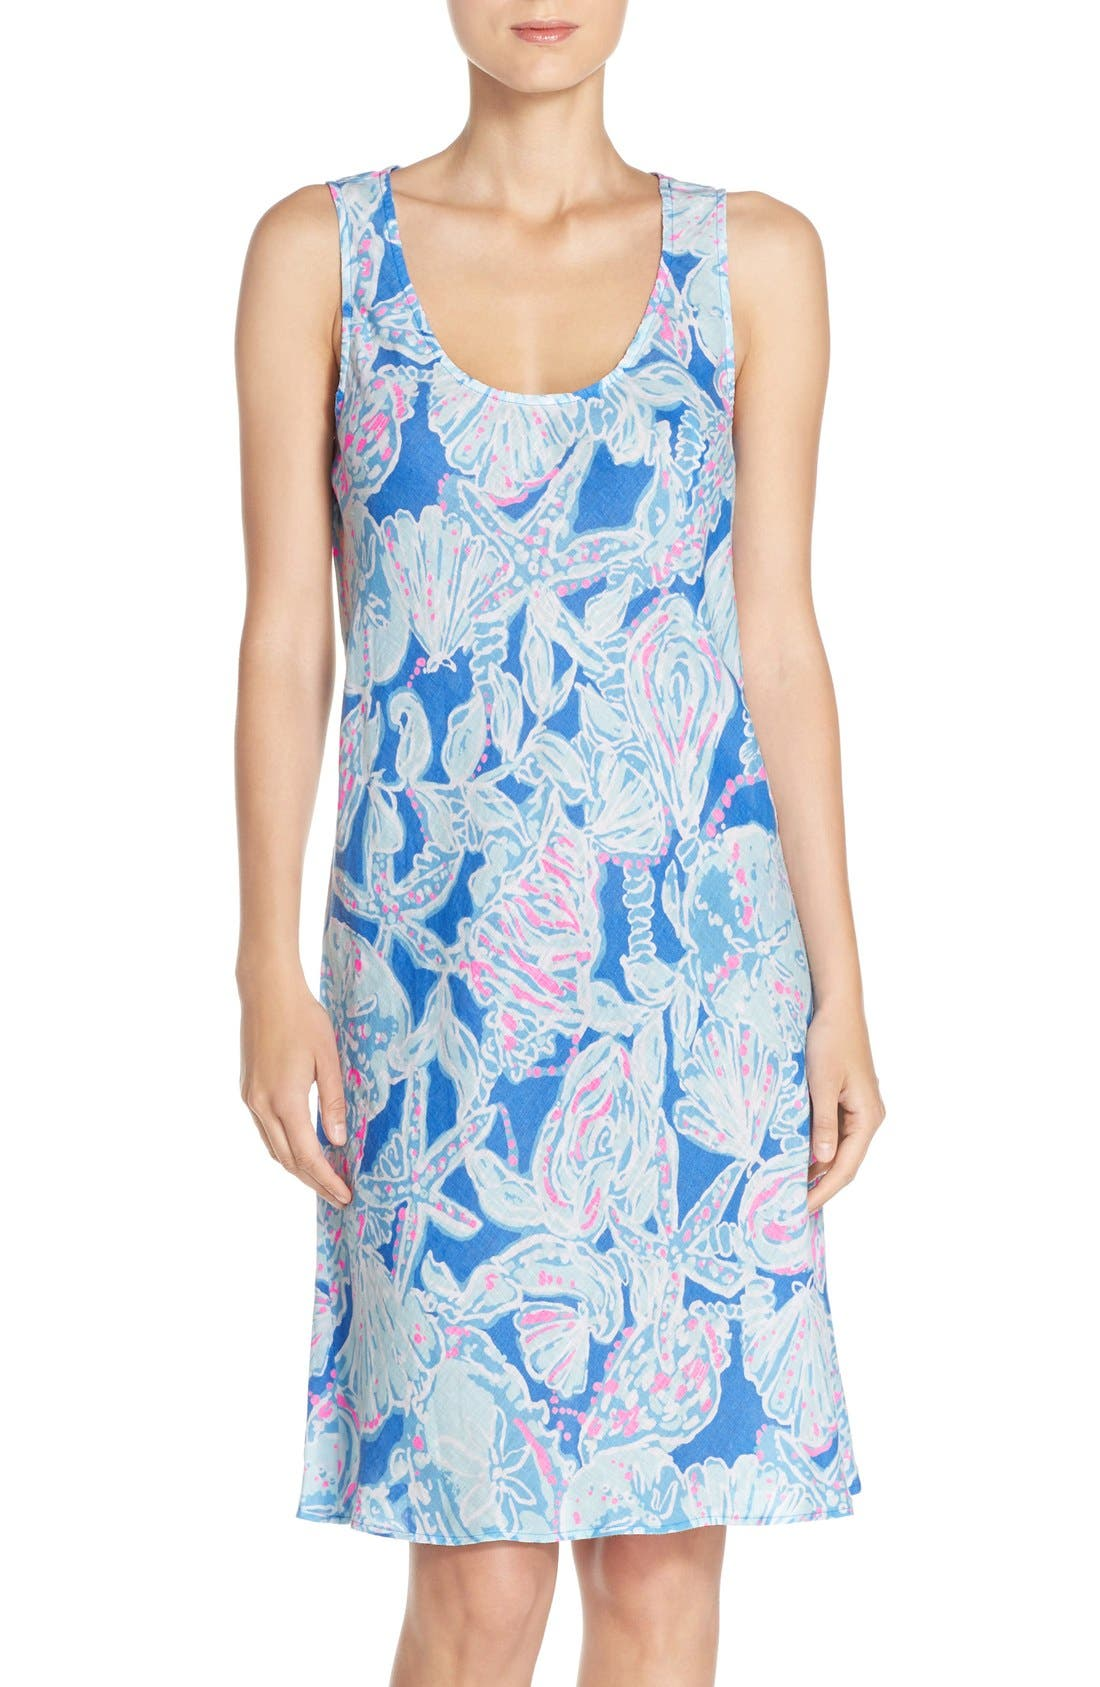 Alternate Image 1 Selected - Lilly Pulitzer® 'Patterson' Print Linen Sheath Dress